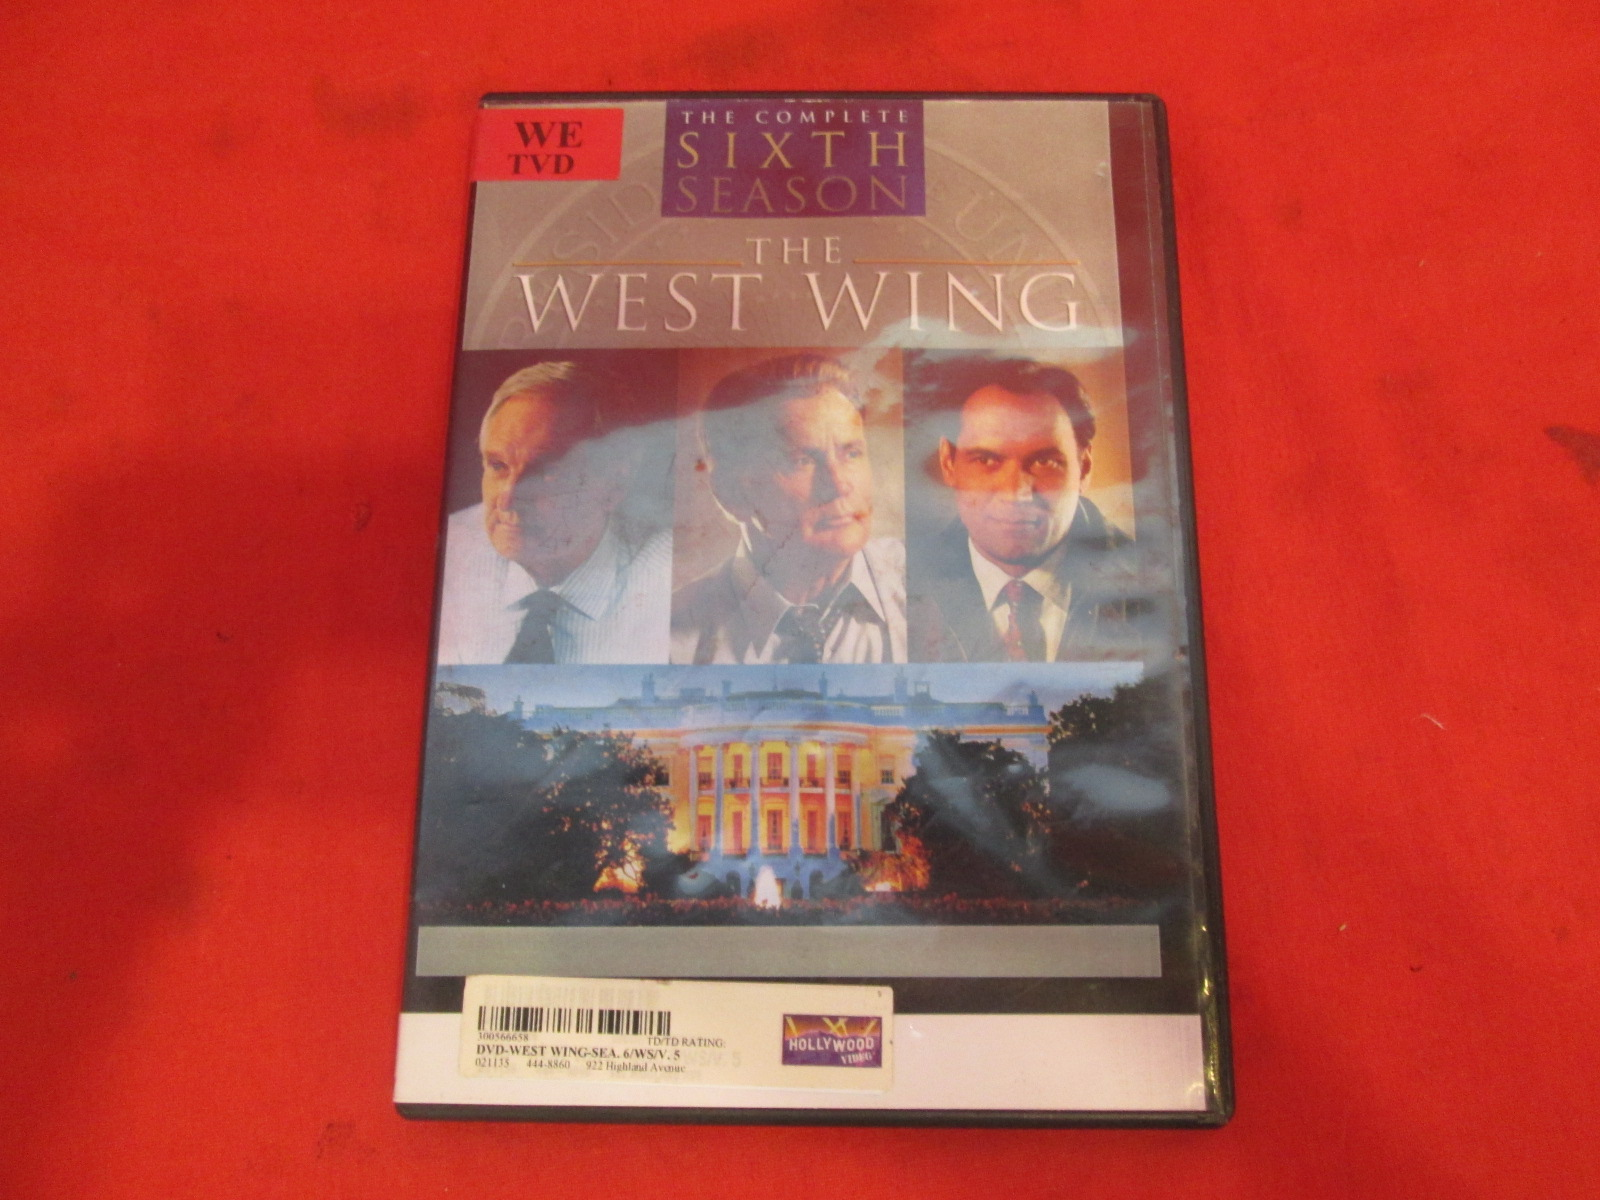 The West Wing Season 6 Disc 5 On DVD With Martin Sheen